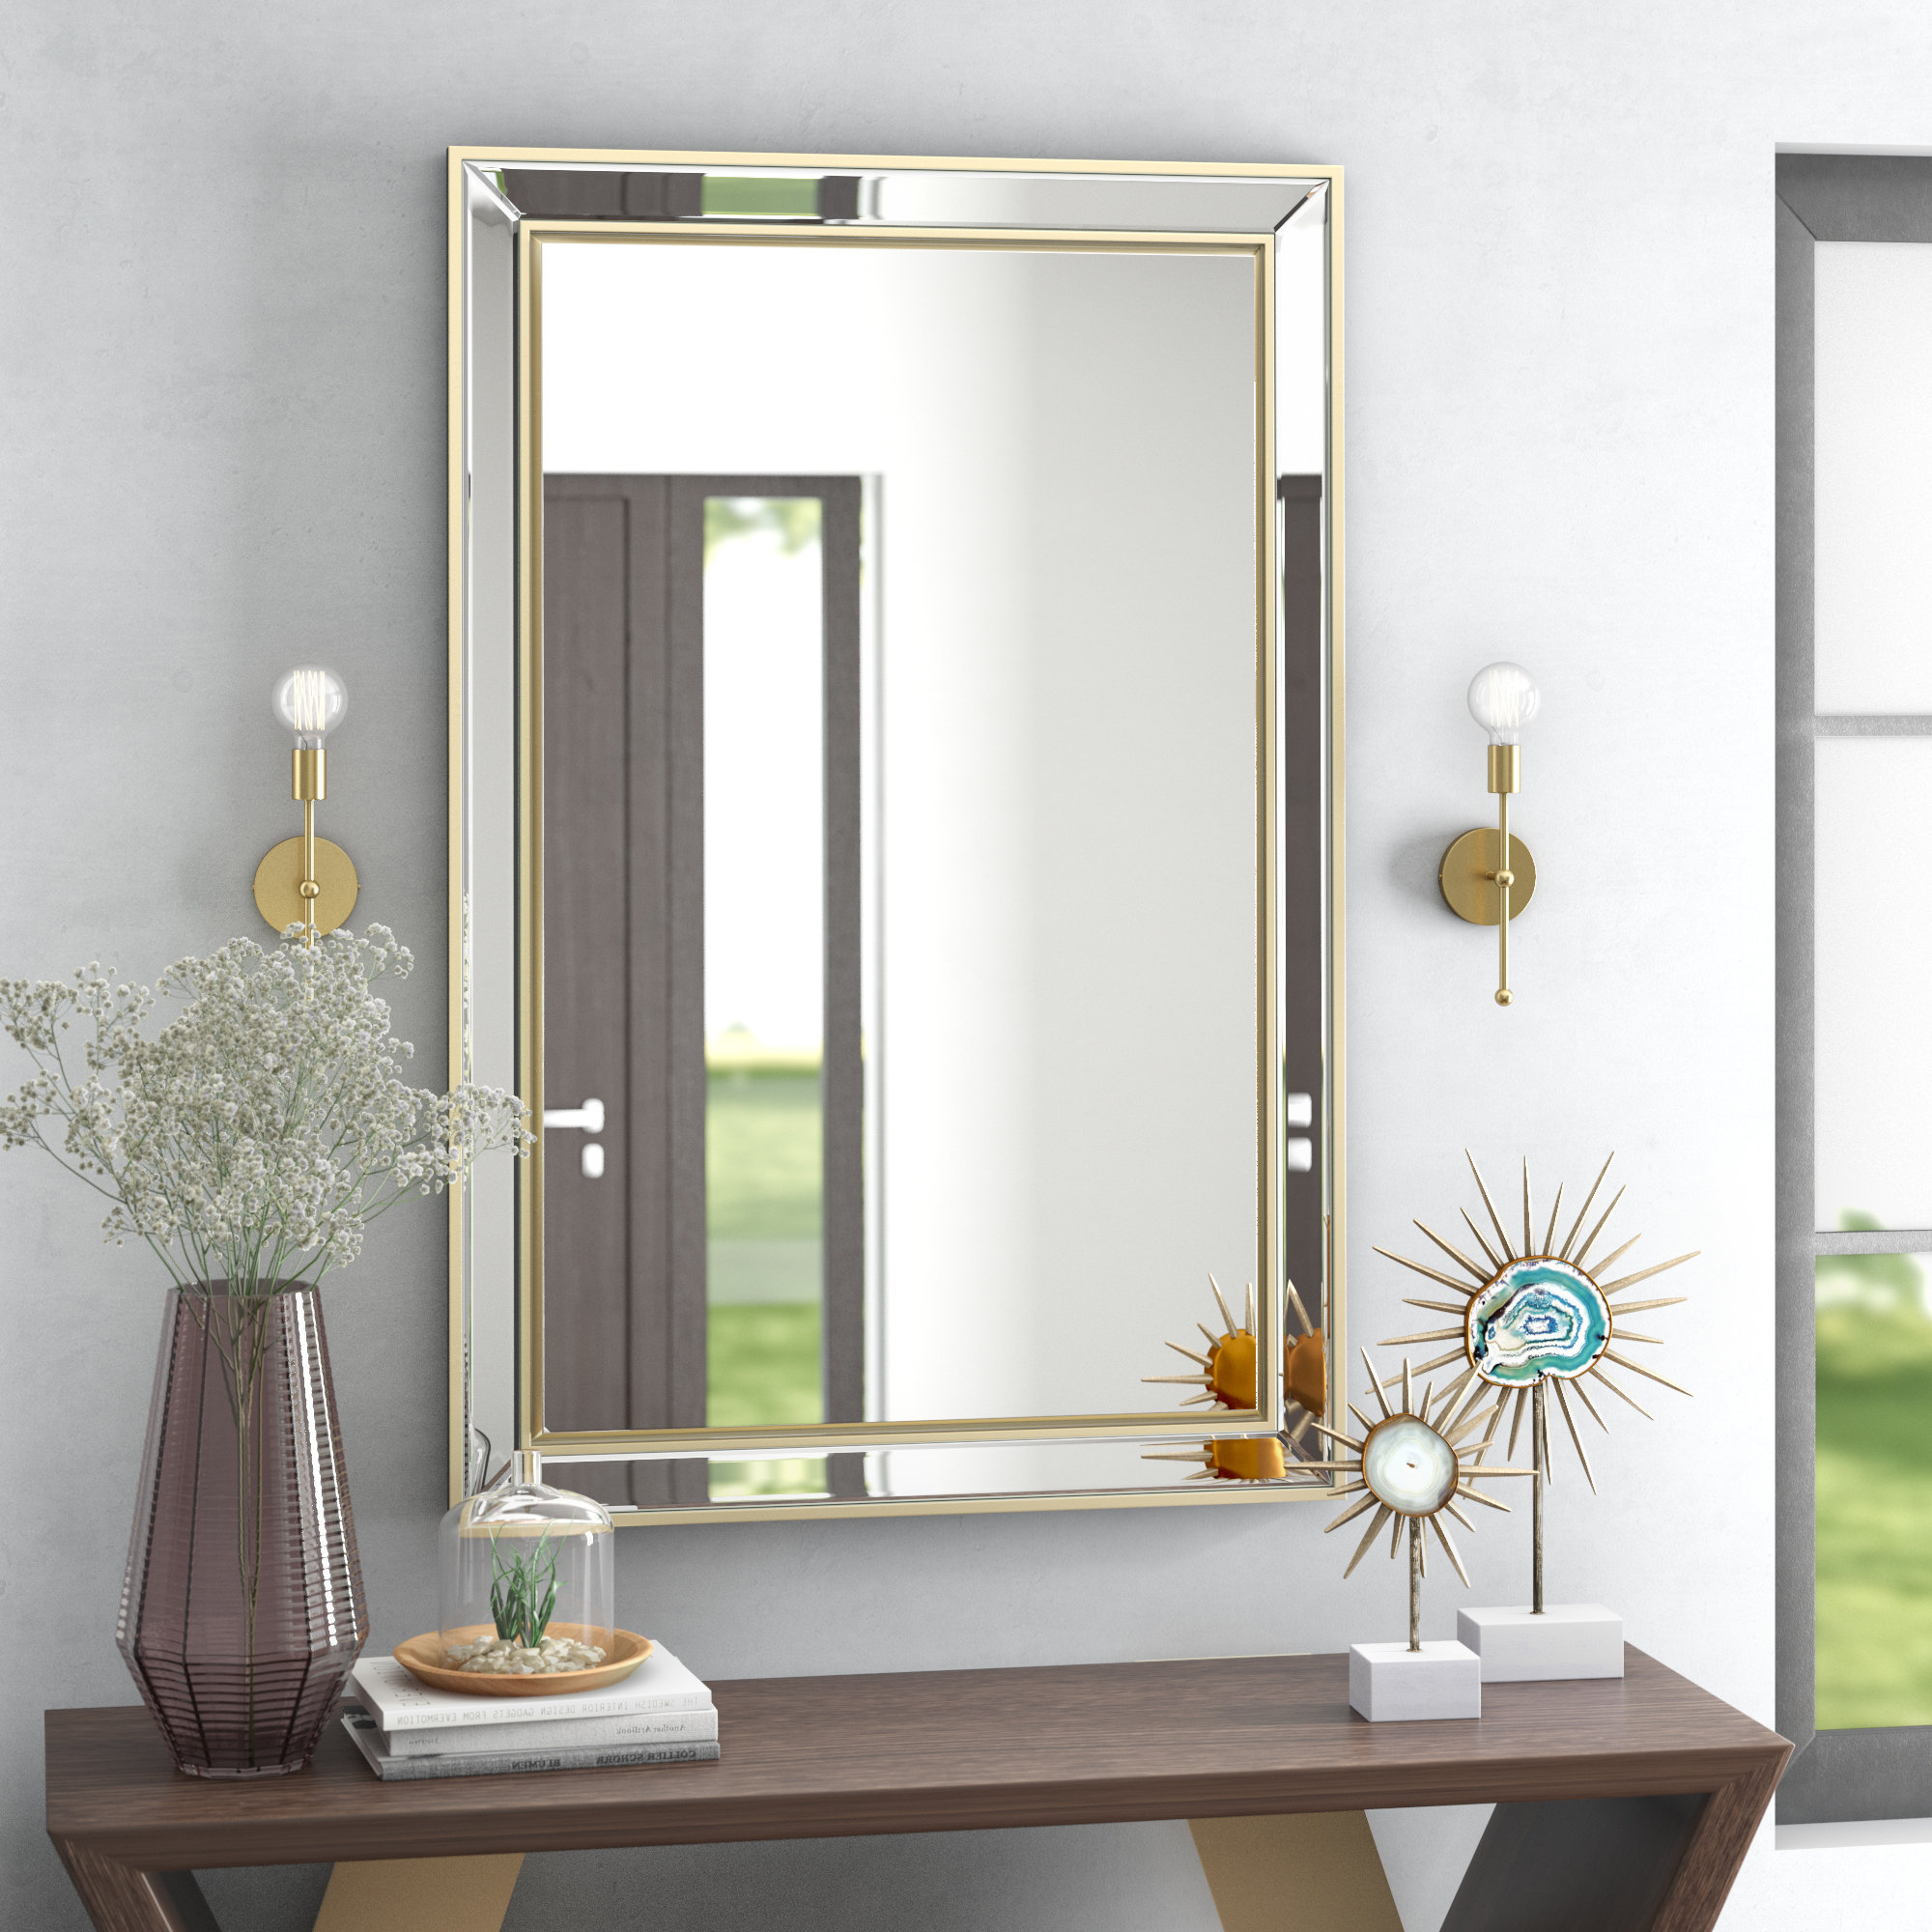 Chul Rectangle Glass Wall Mirror Within Favorite Glass Wall Mirrors (View 10 of 20)